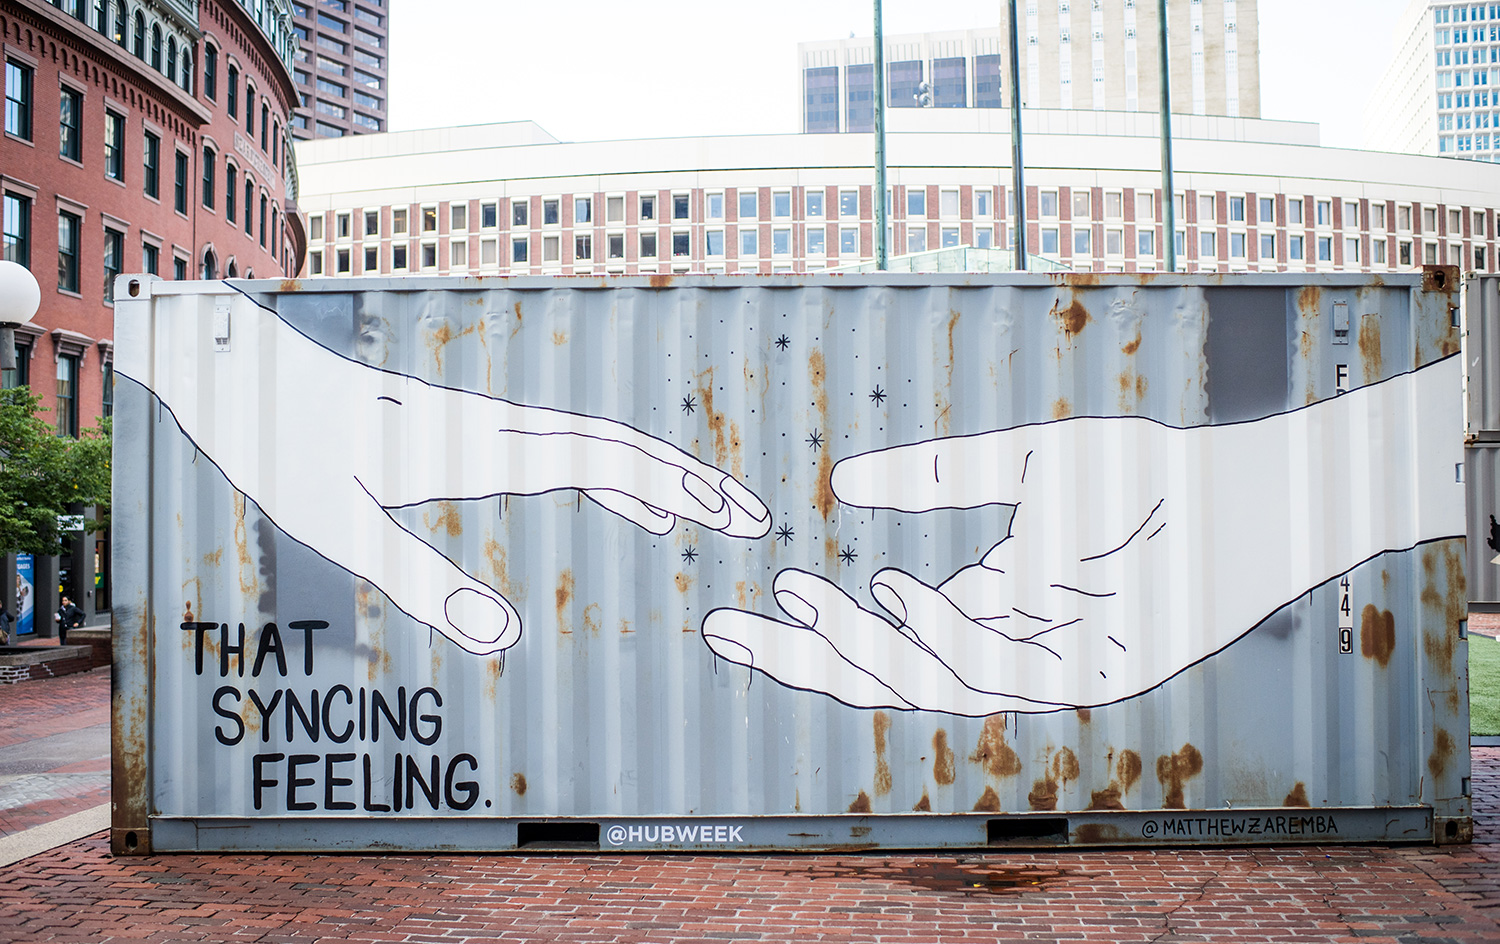 "An abandoned shipping container painted with a mural showing 2 hands reaching for each other and the phrase 'That Syncing Feeling."" The art will be featured at Boston's HUBWeek."